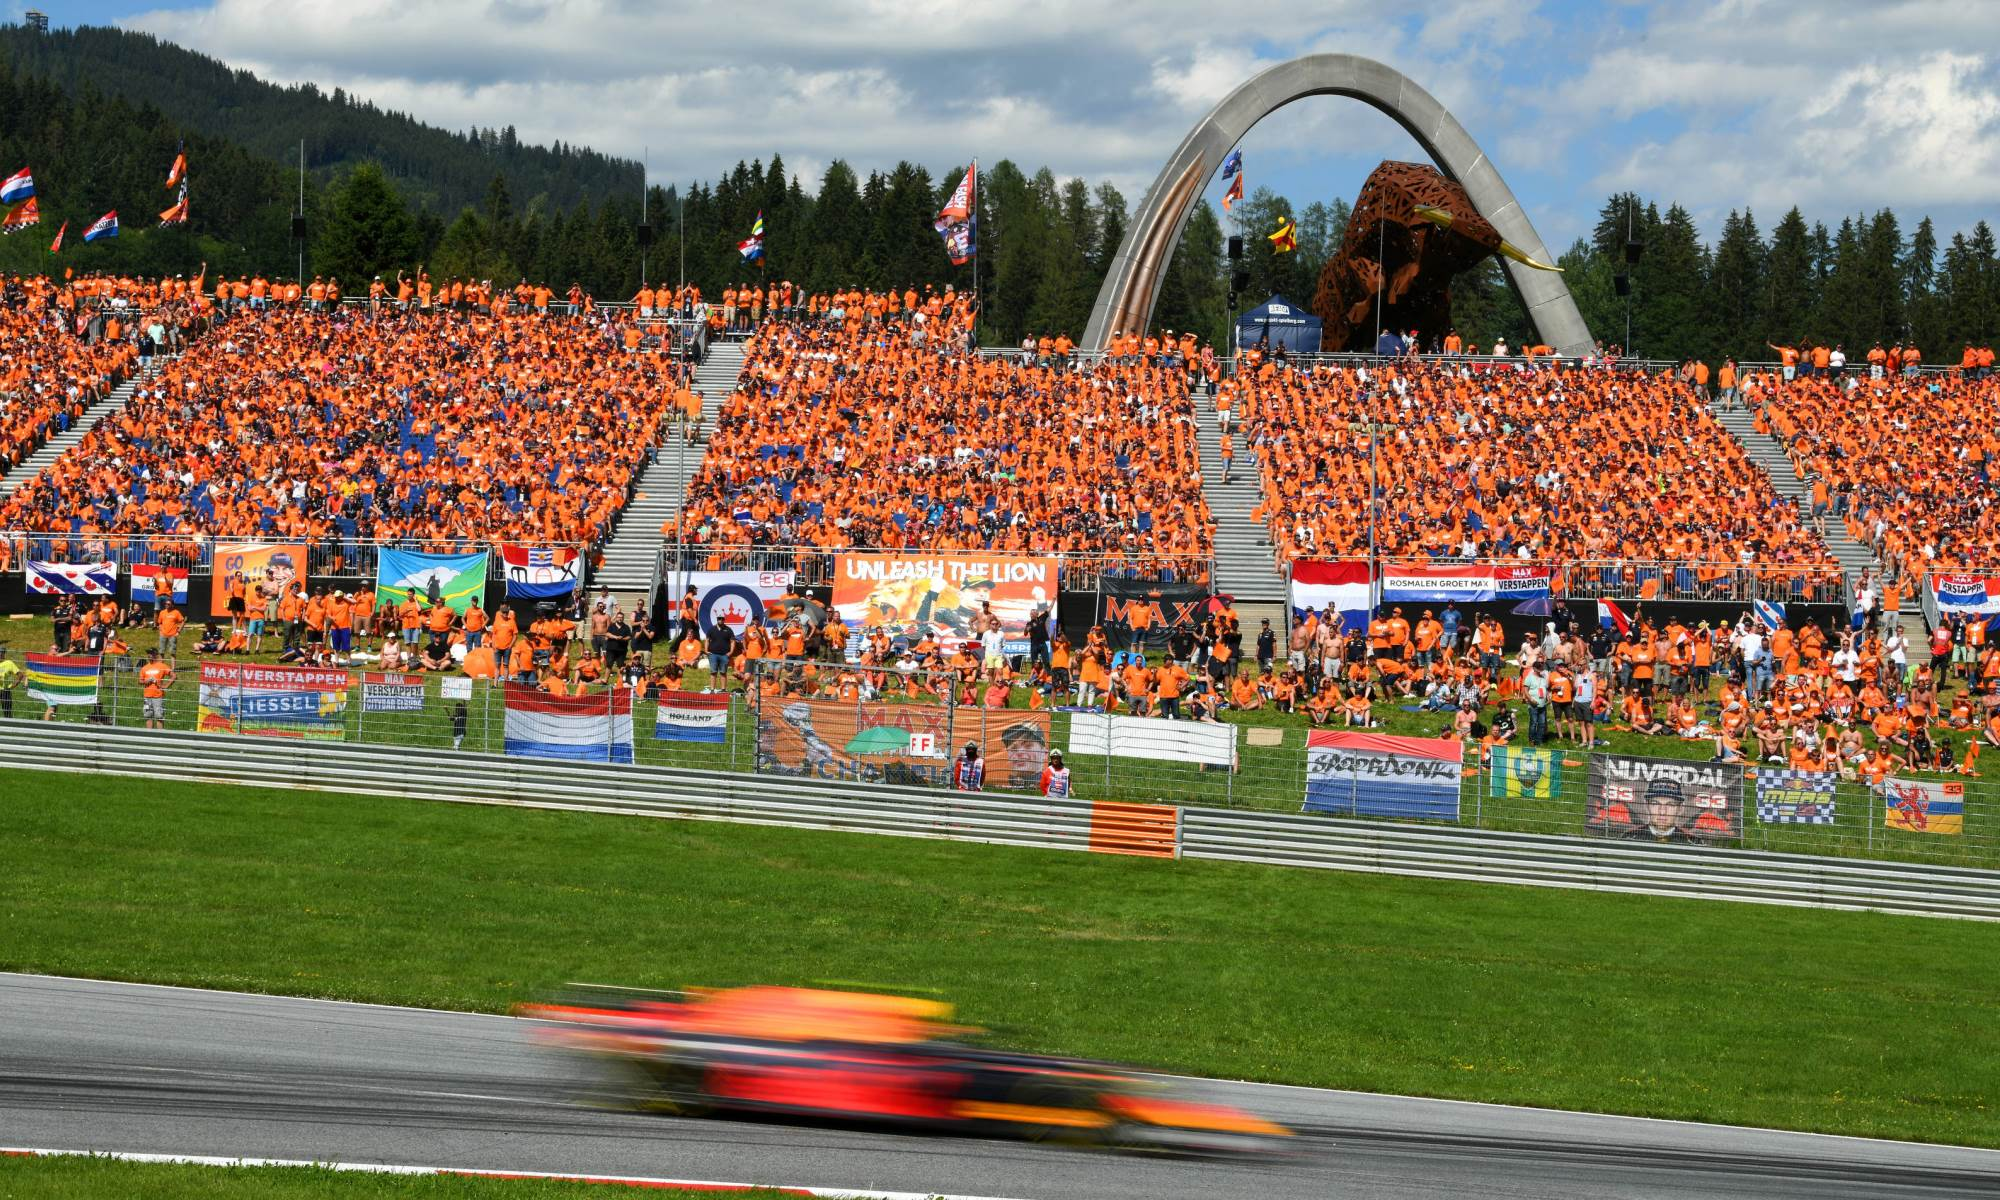 F1 Preview Austria 2019 is brought you by Nick van der Meulen